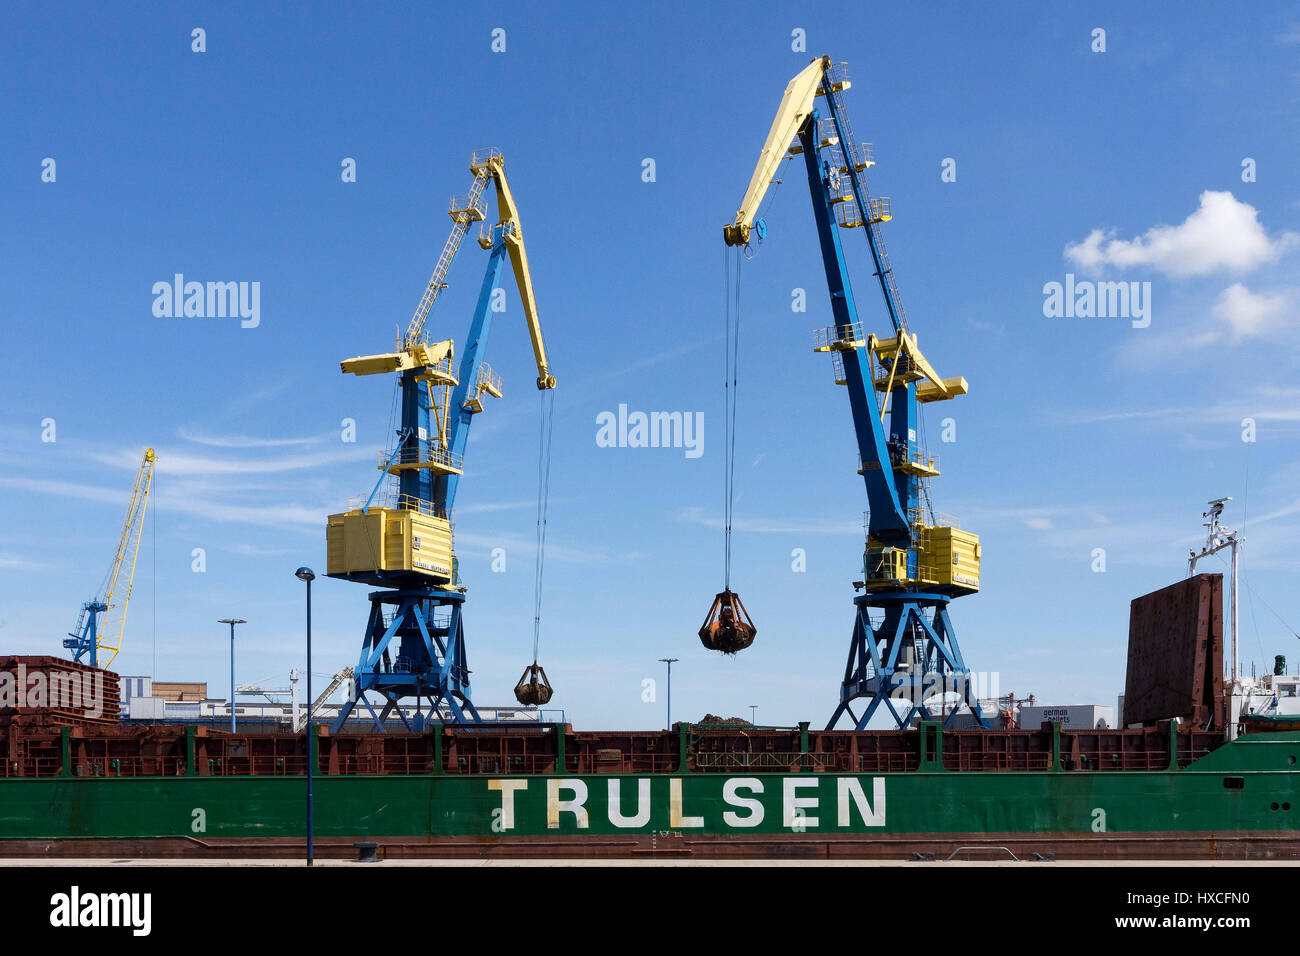 Two cranes unload a freighter in the harbour of the Hanseatic town Wismar, Two cranes unload a freighter in the - Stock Image